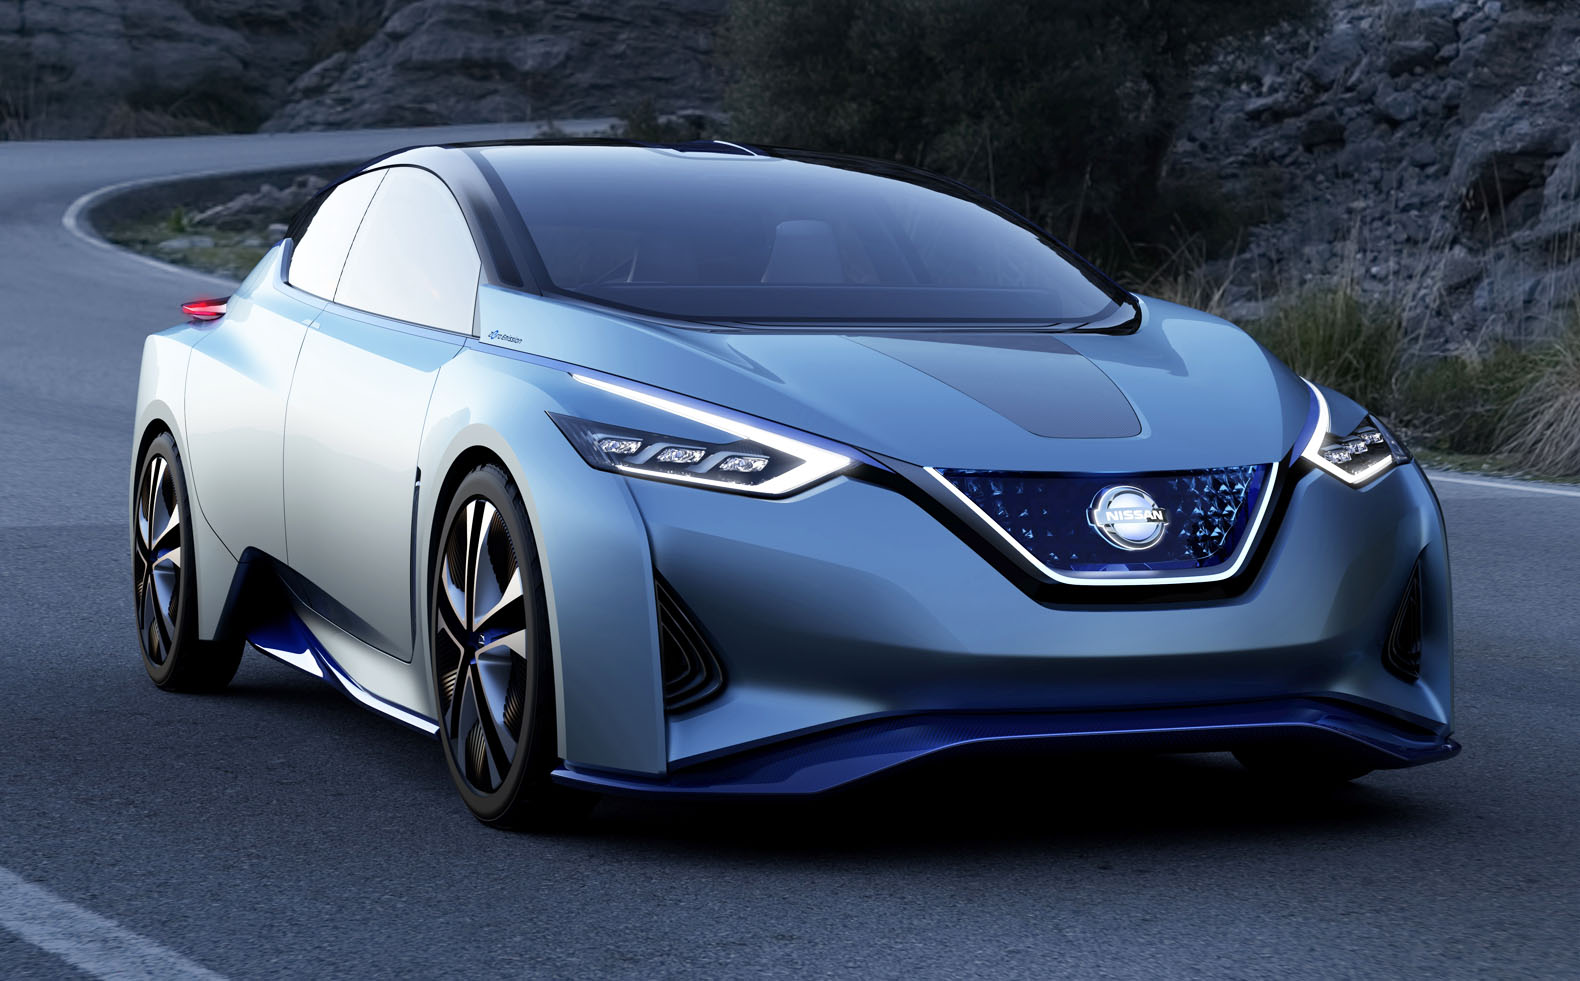 Nissan S First Extended Range Electric Car Is Going To Debut In 2016